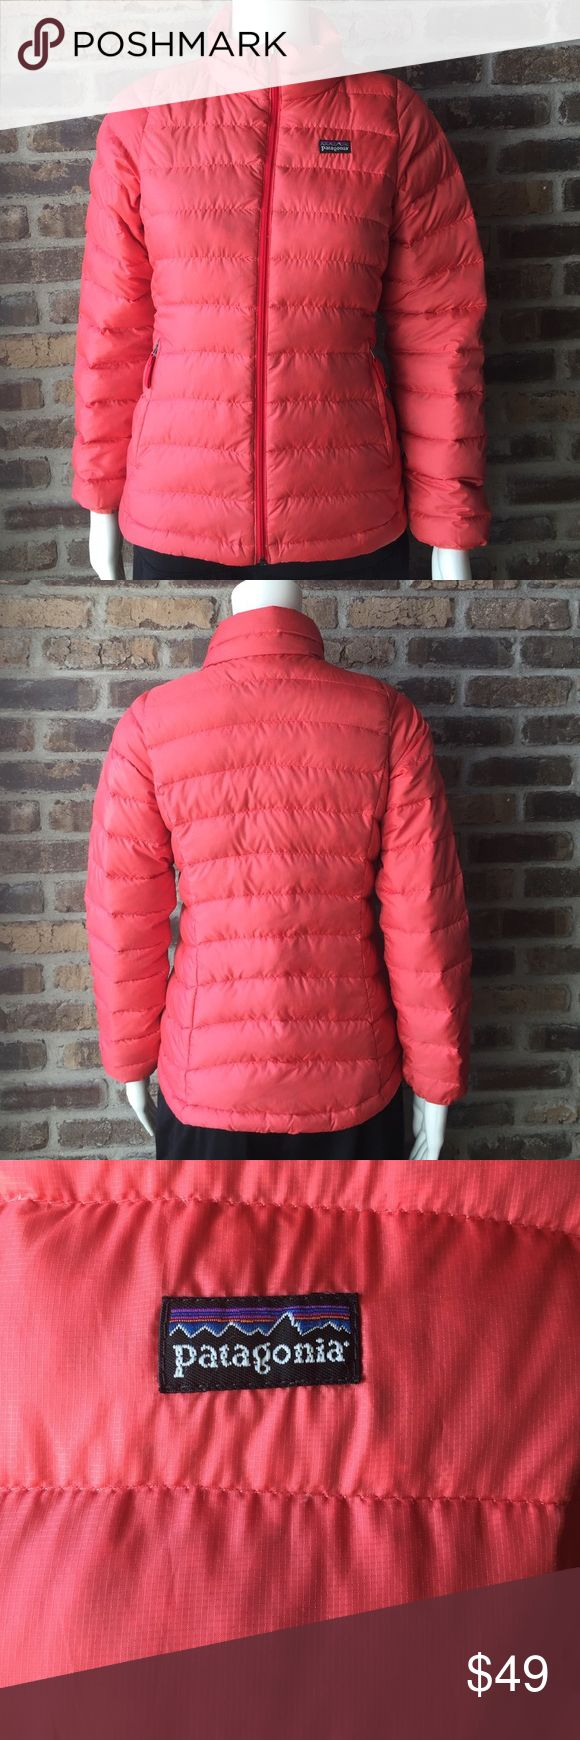 Girls Patagonia jacket Girls size large (12) Patagonia goose down jacket. Notice and picture you can see the dark feathers through the material it is not dirty. The jacket is on a size 6 manikin Patagonia Jackets & Coats Puffers